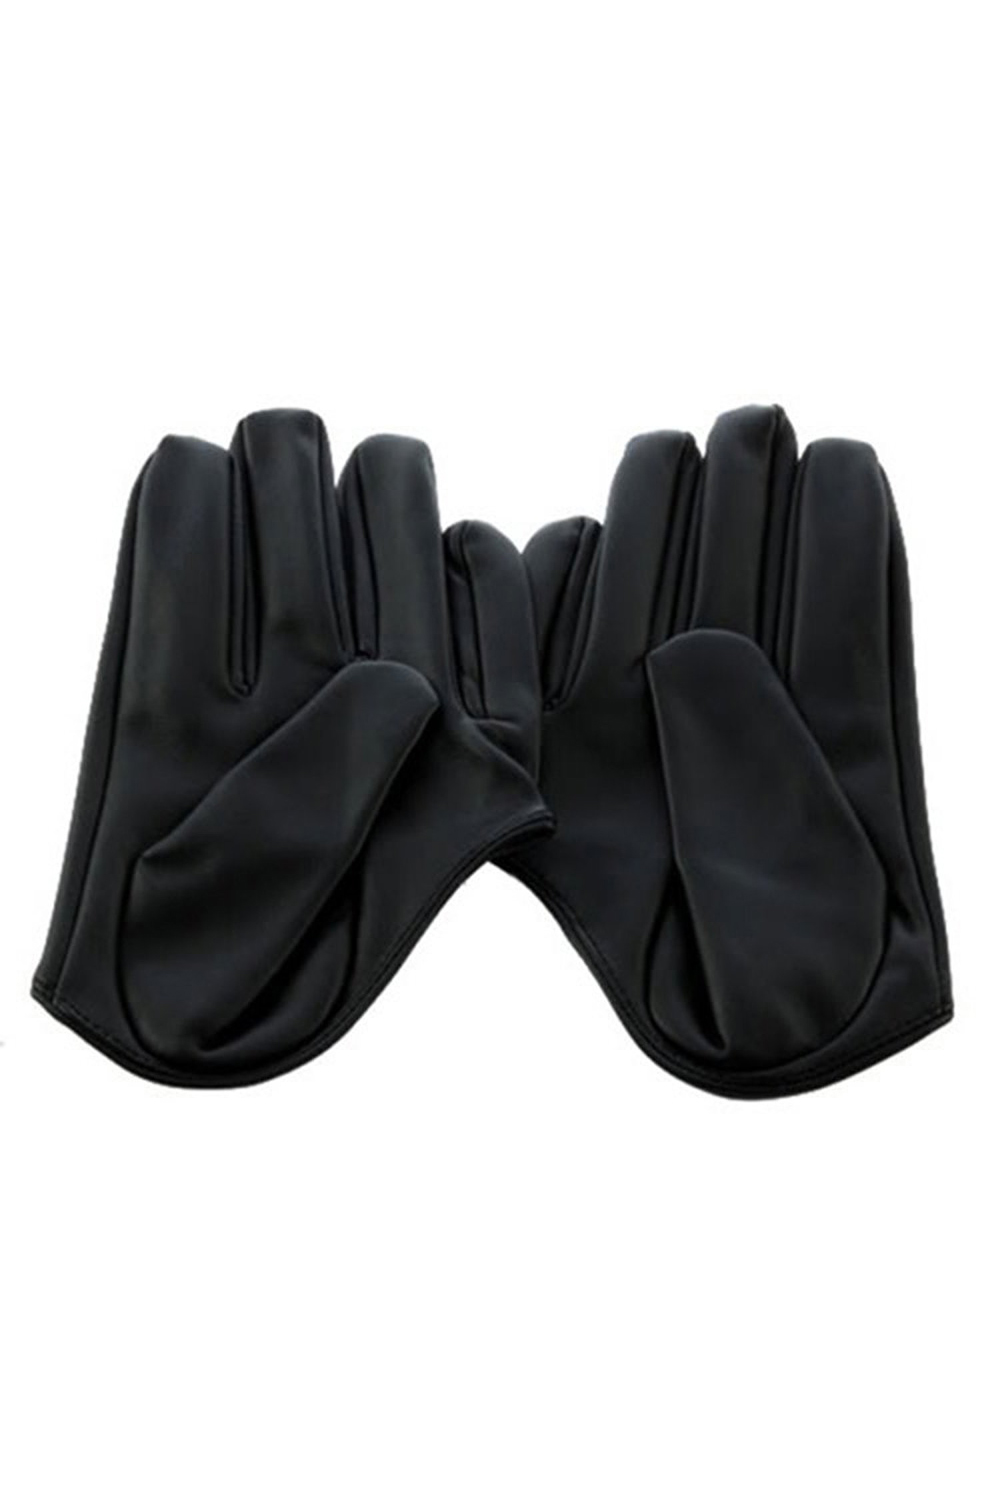 Black gloves online - Women S Faux Leather Five Finger Half Palm Gloves Black China Mainland